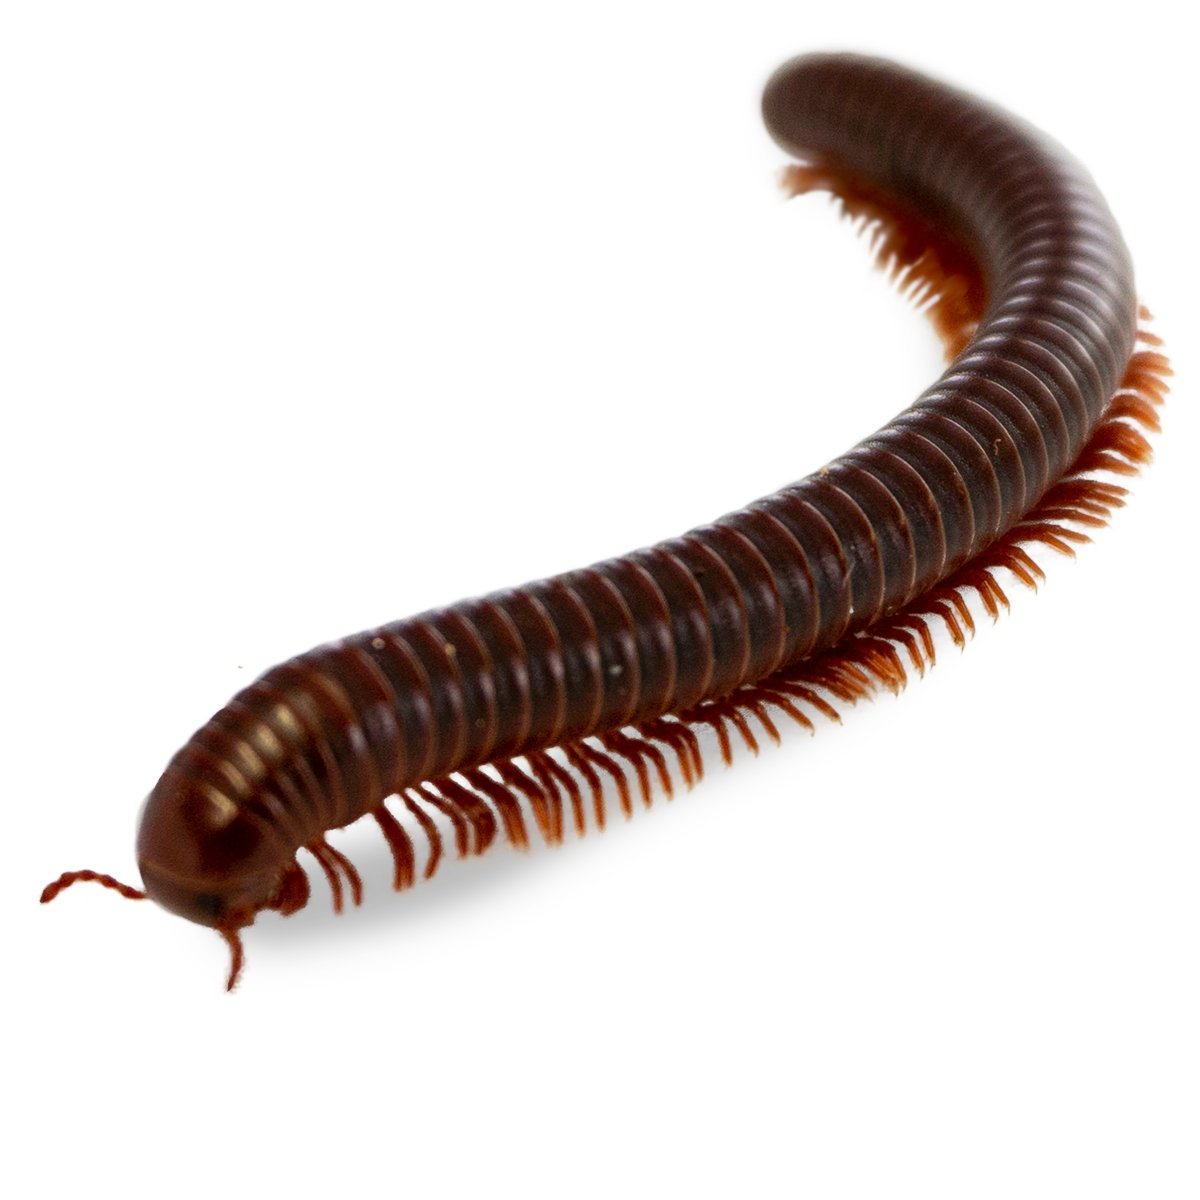 millipede care josh s frogs how to guides